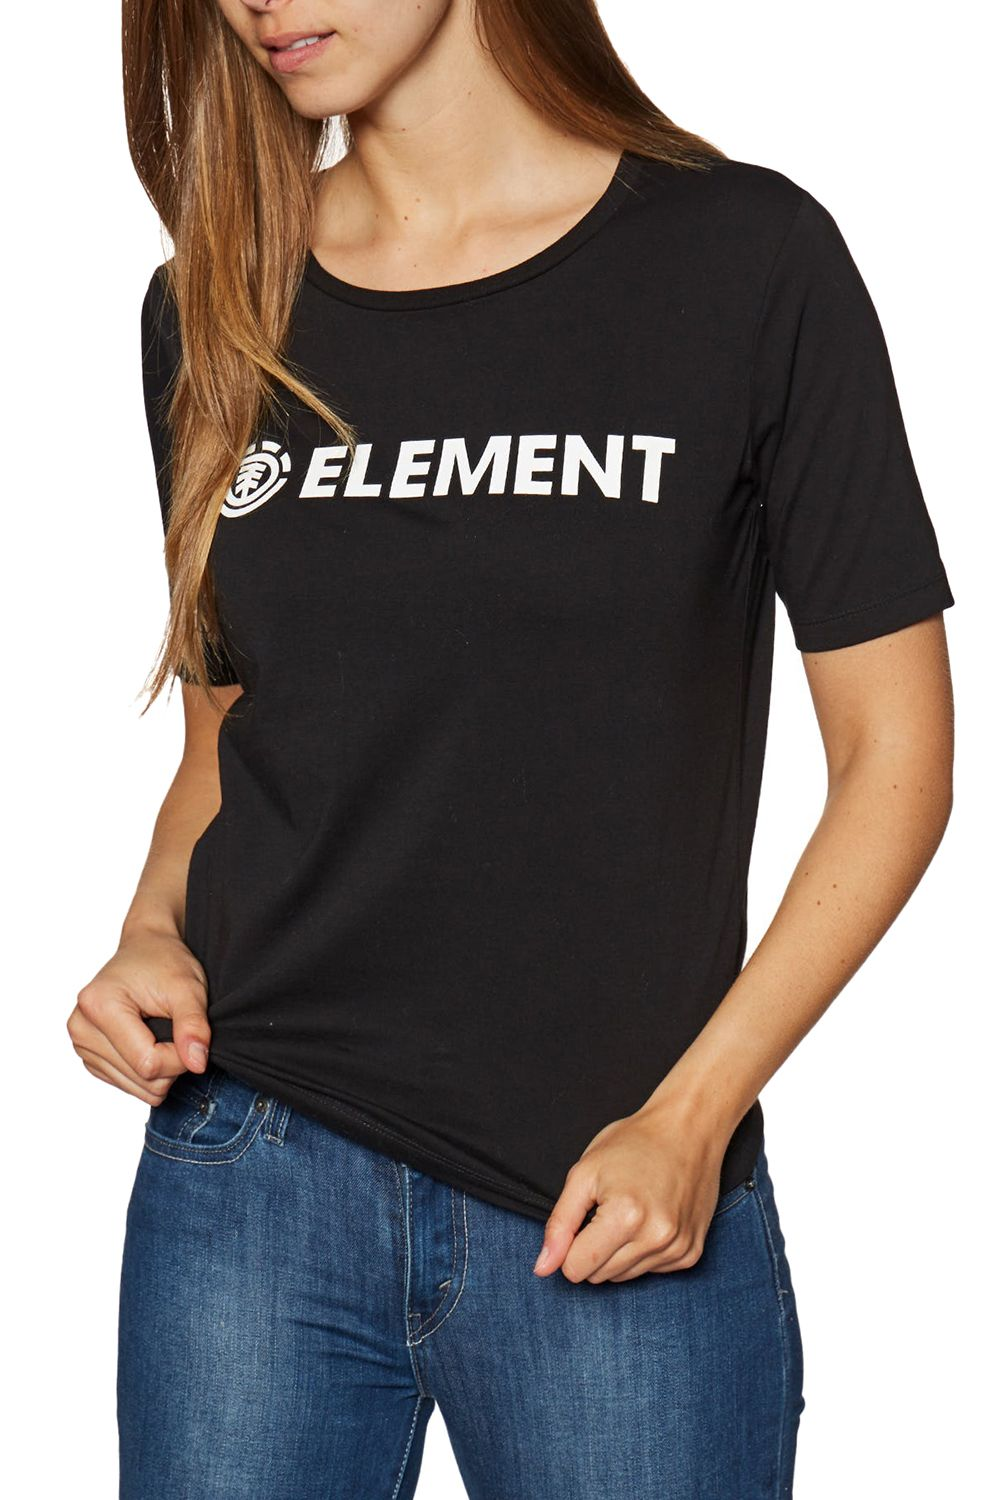 Element T-Shirt ELEMENT LOGO Black